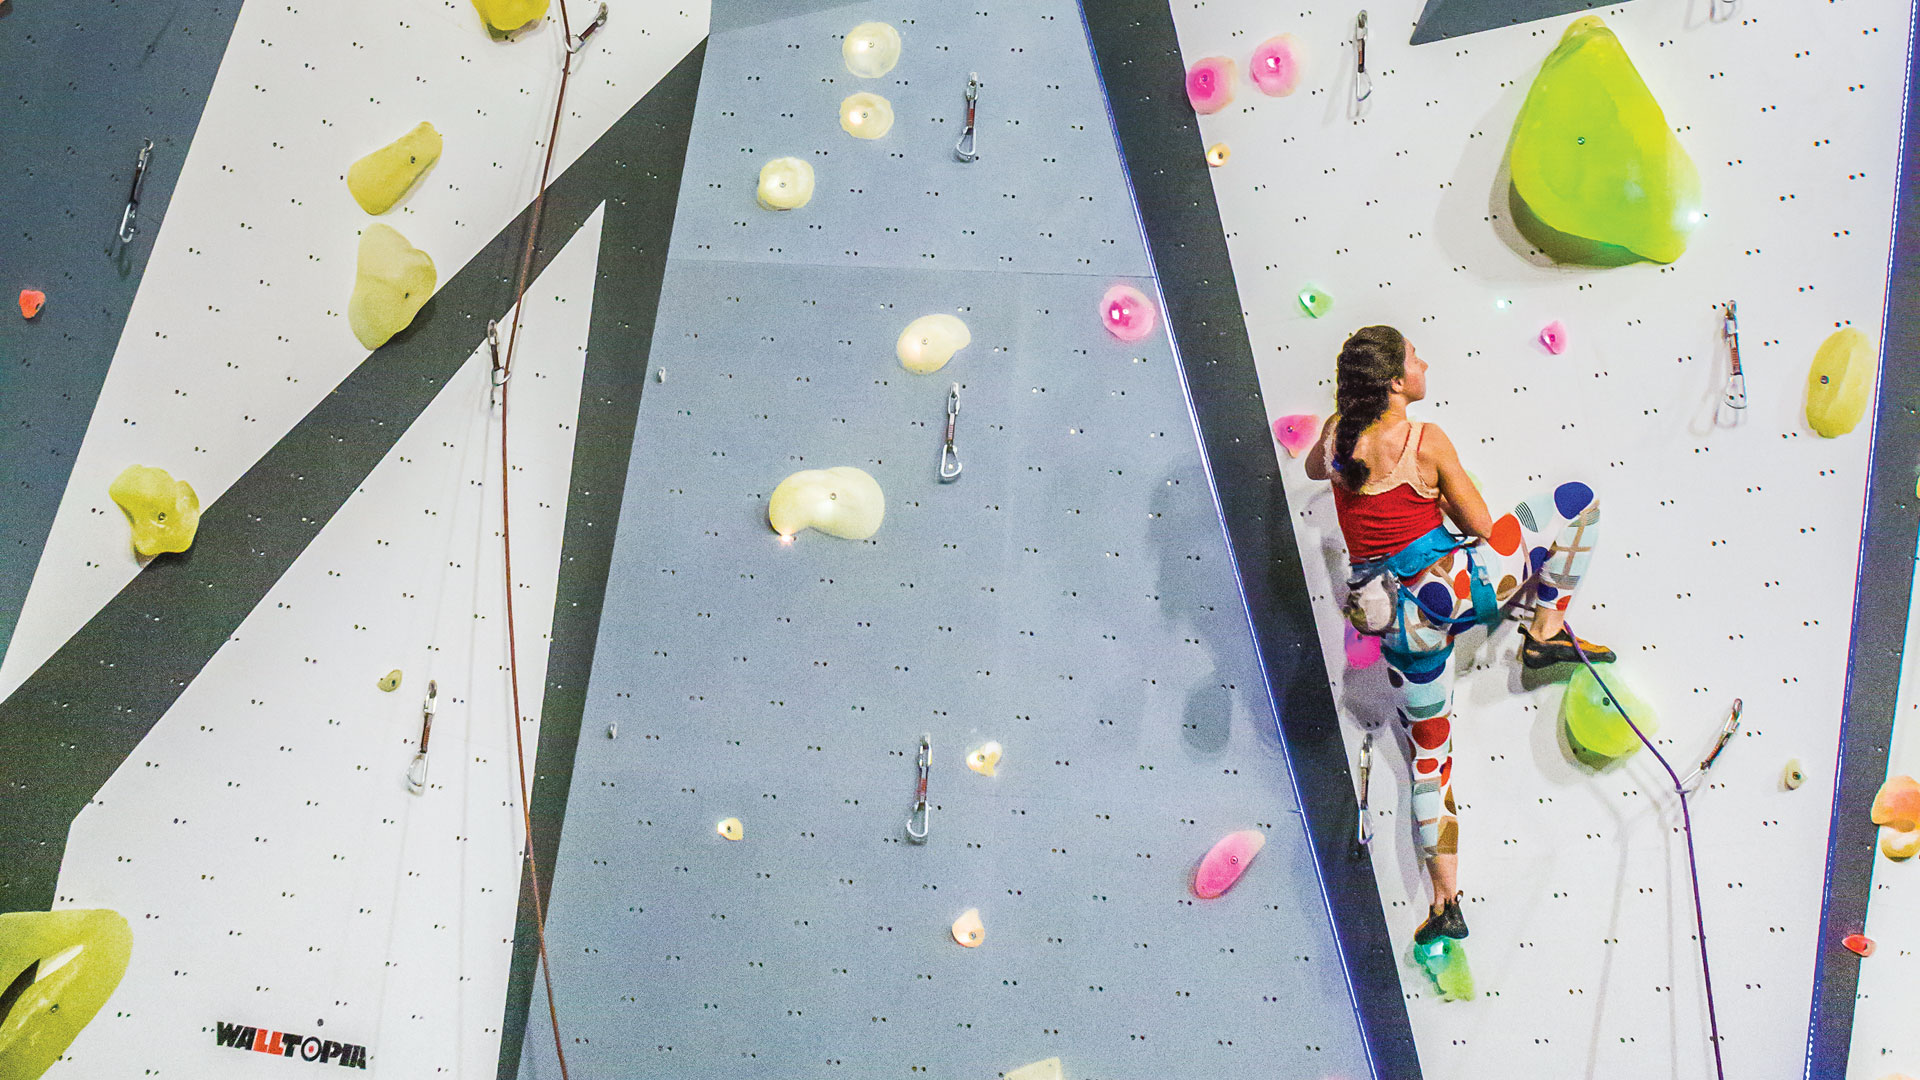 Walltopia lead climbing course